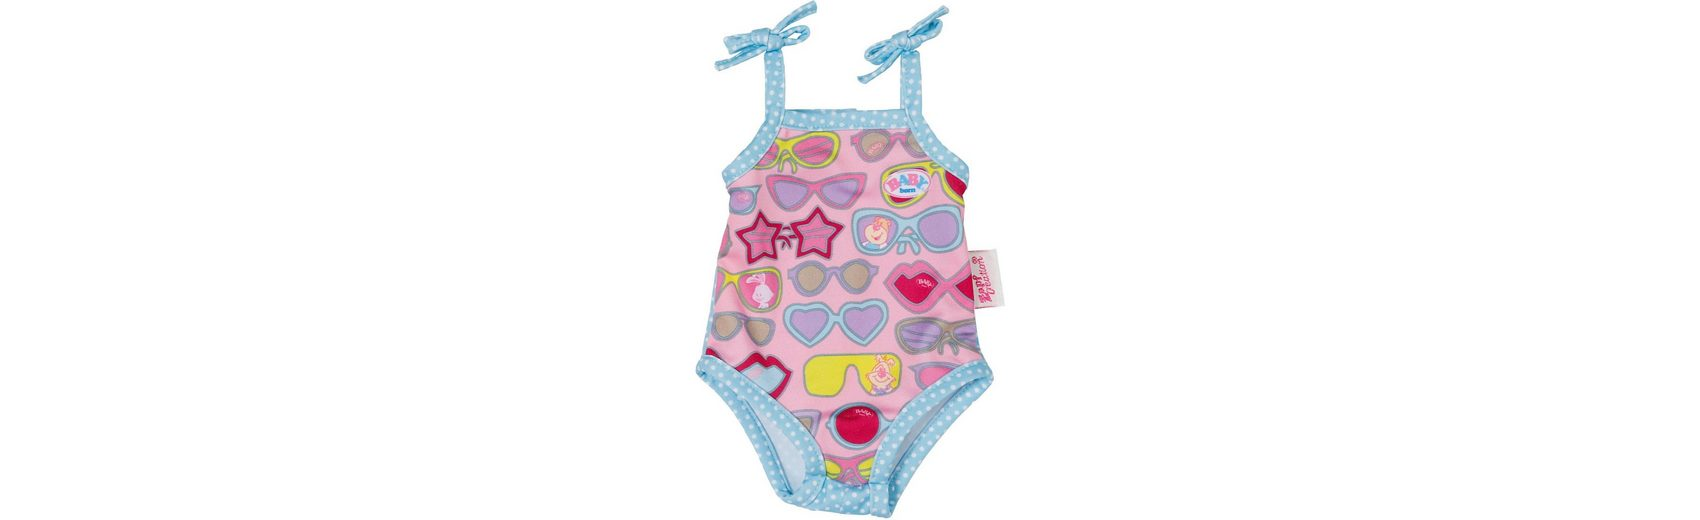 Zapf Creation BABY born® Badeanzug Kollektion Rosa, Gr. 43